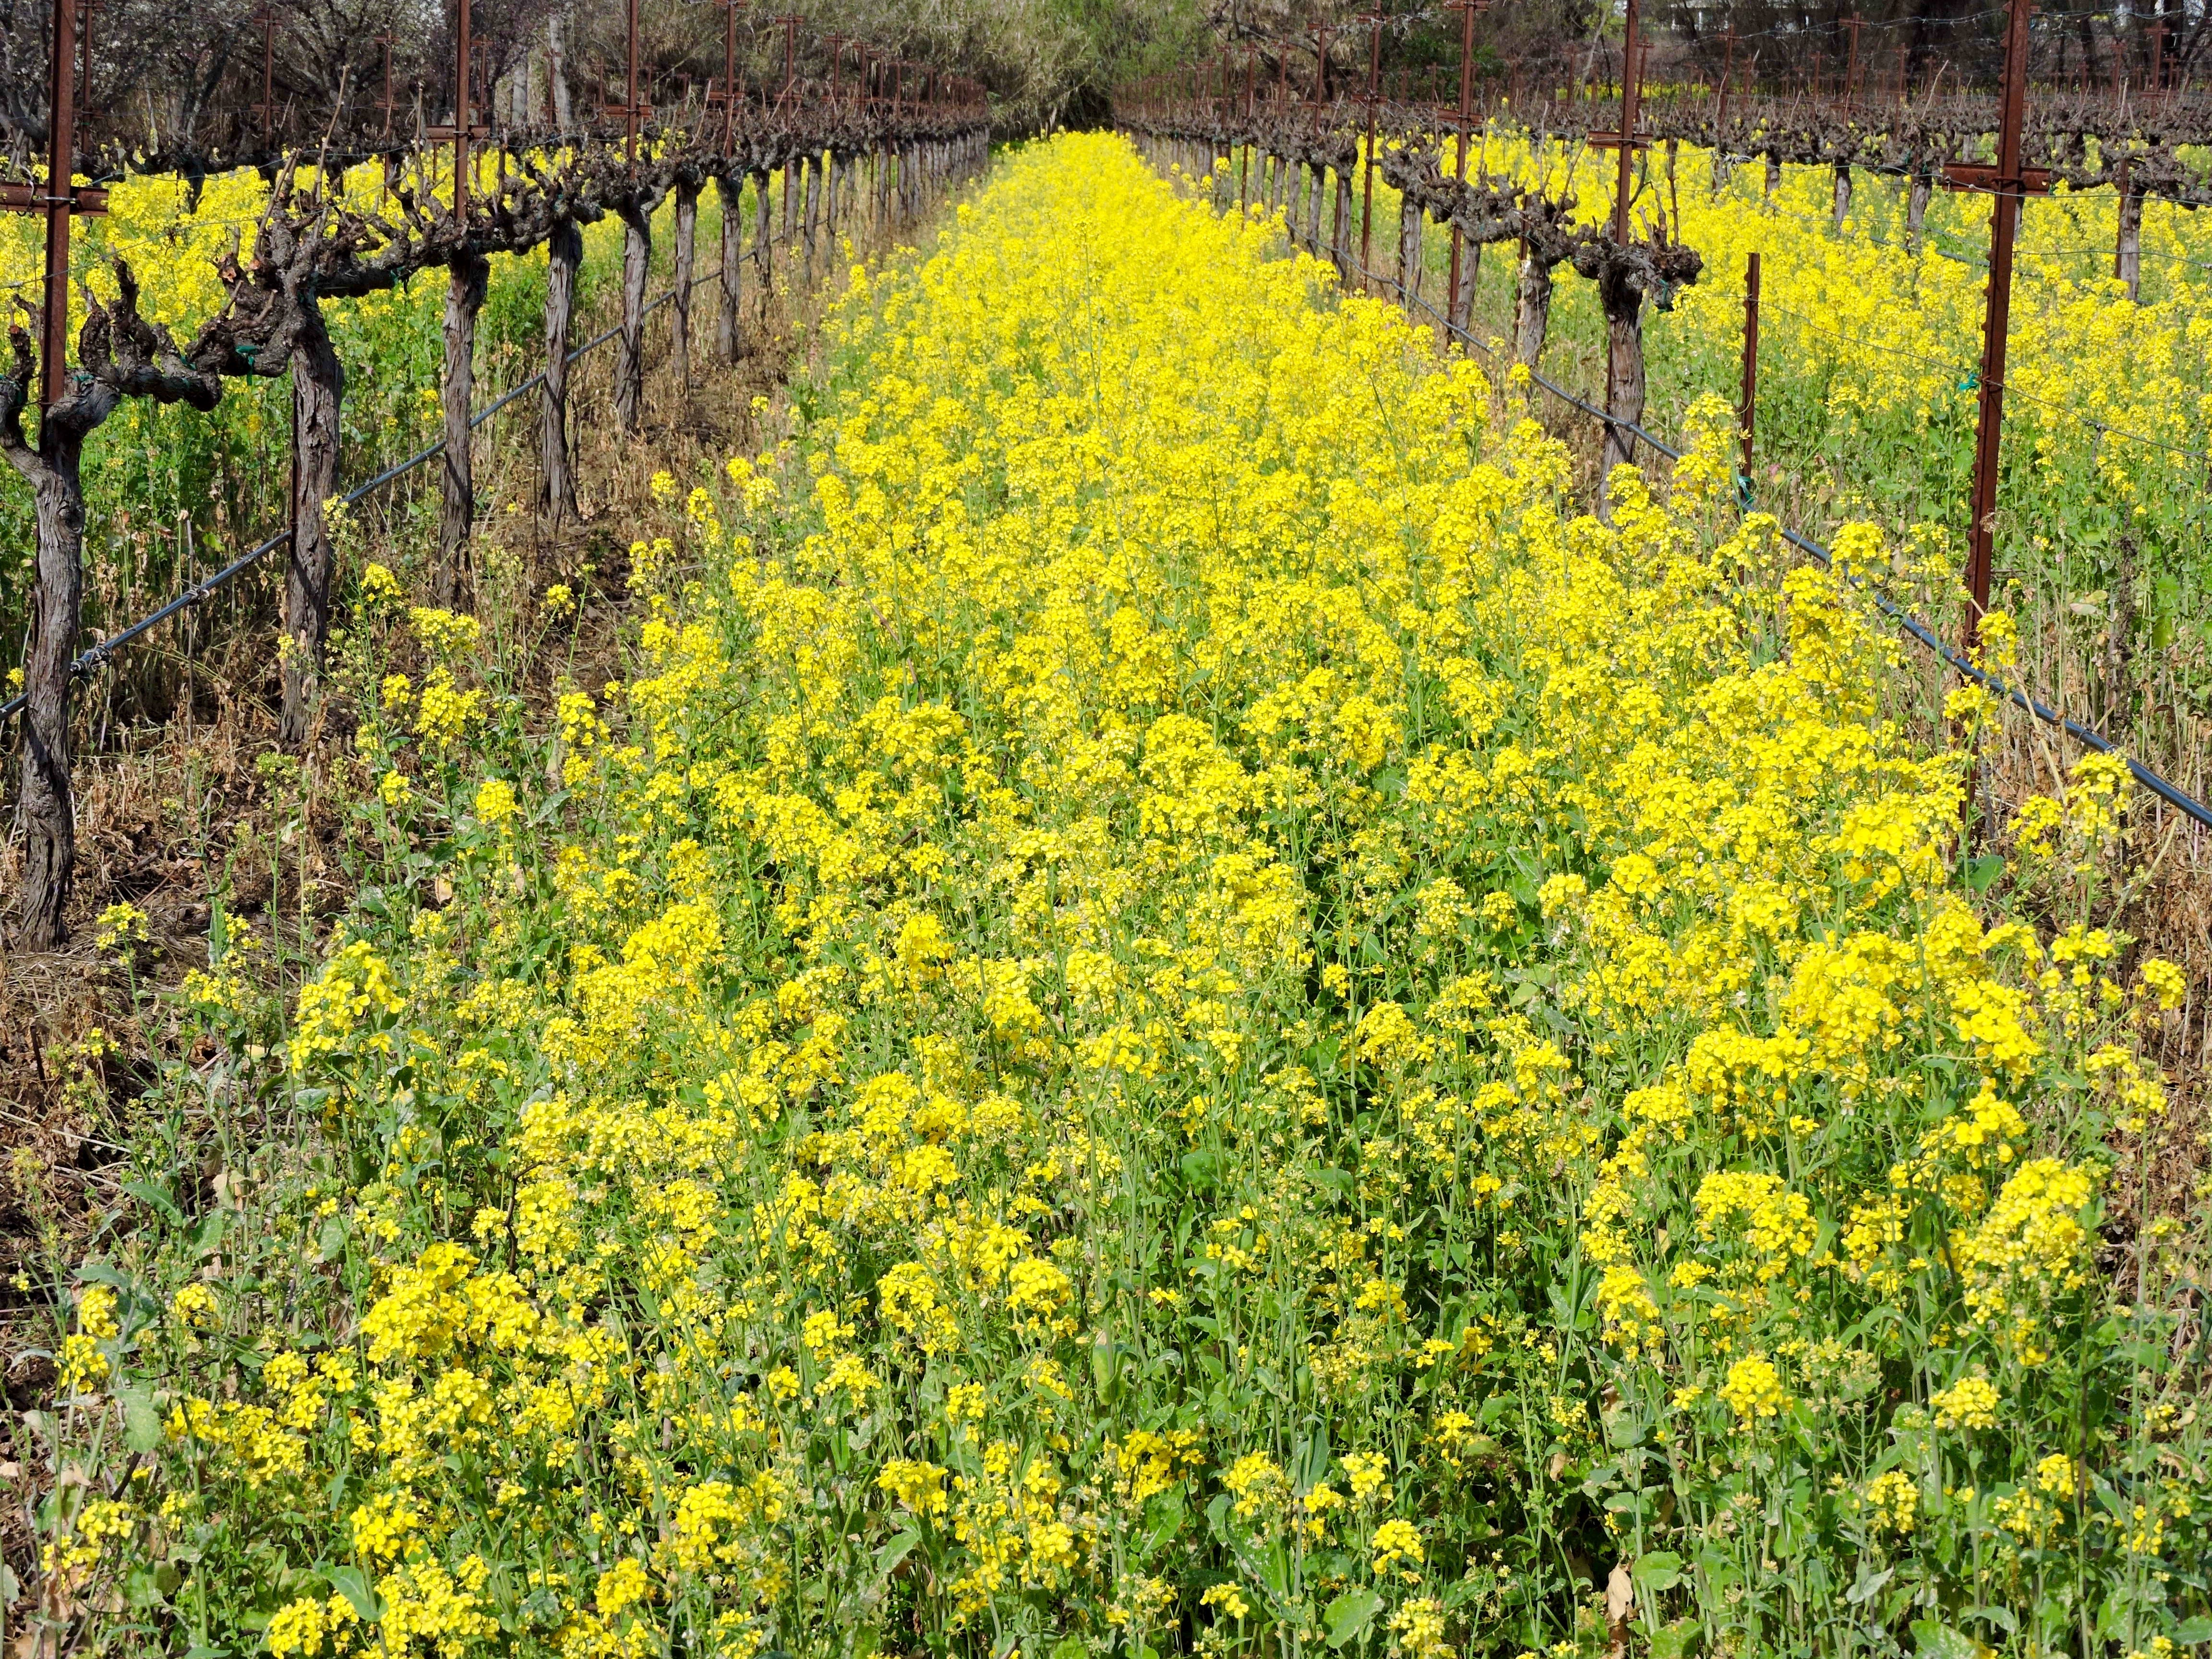 check out our photos of the mustard plant in suisun valley explore the region today and share your own pictures with us you can find us on instagram